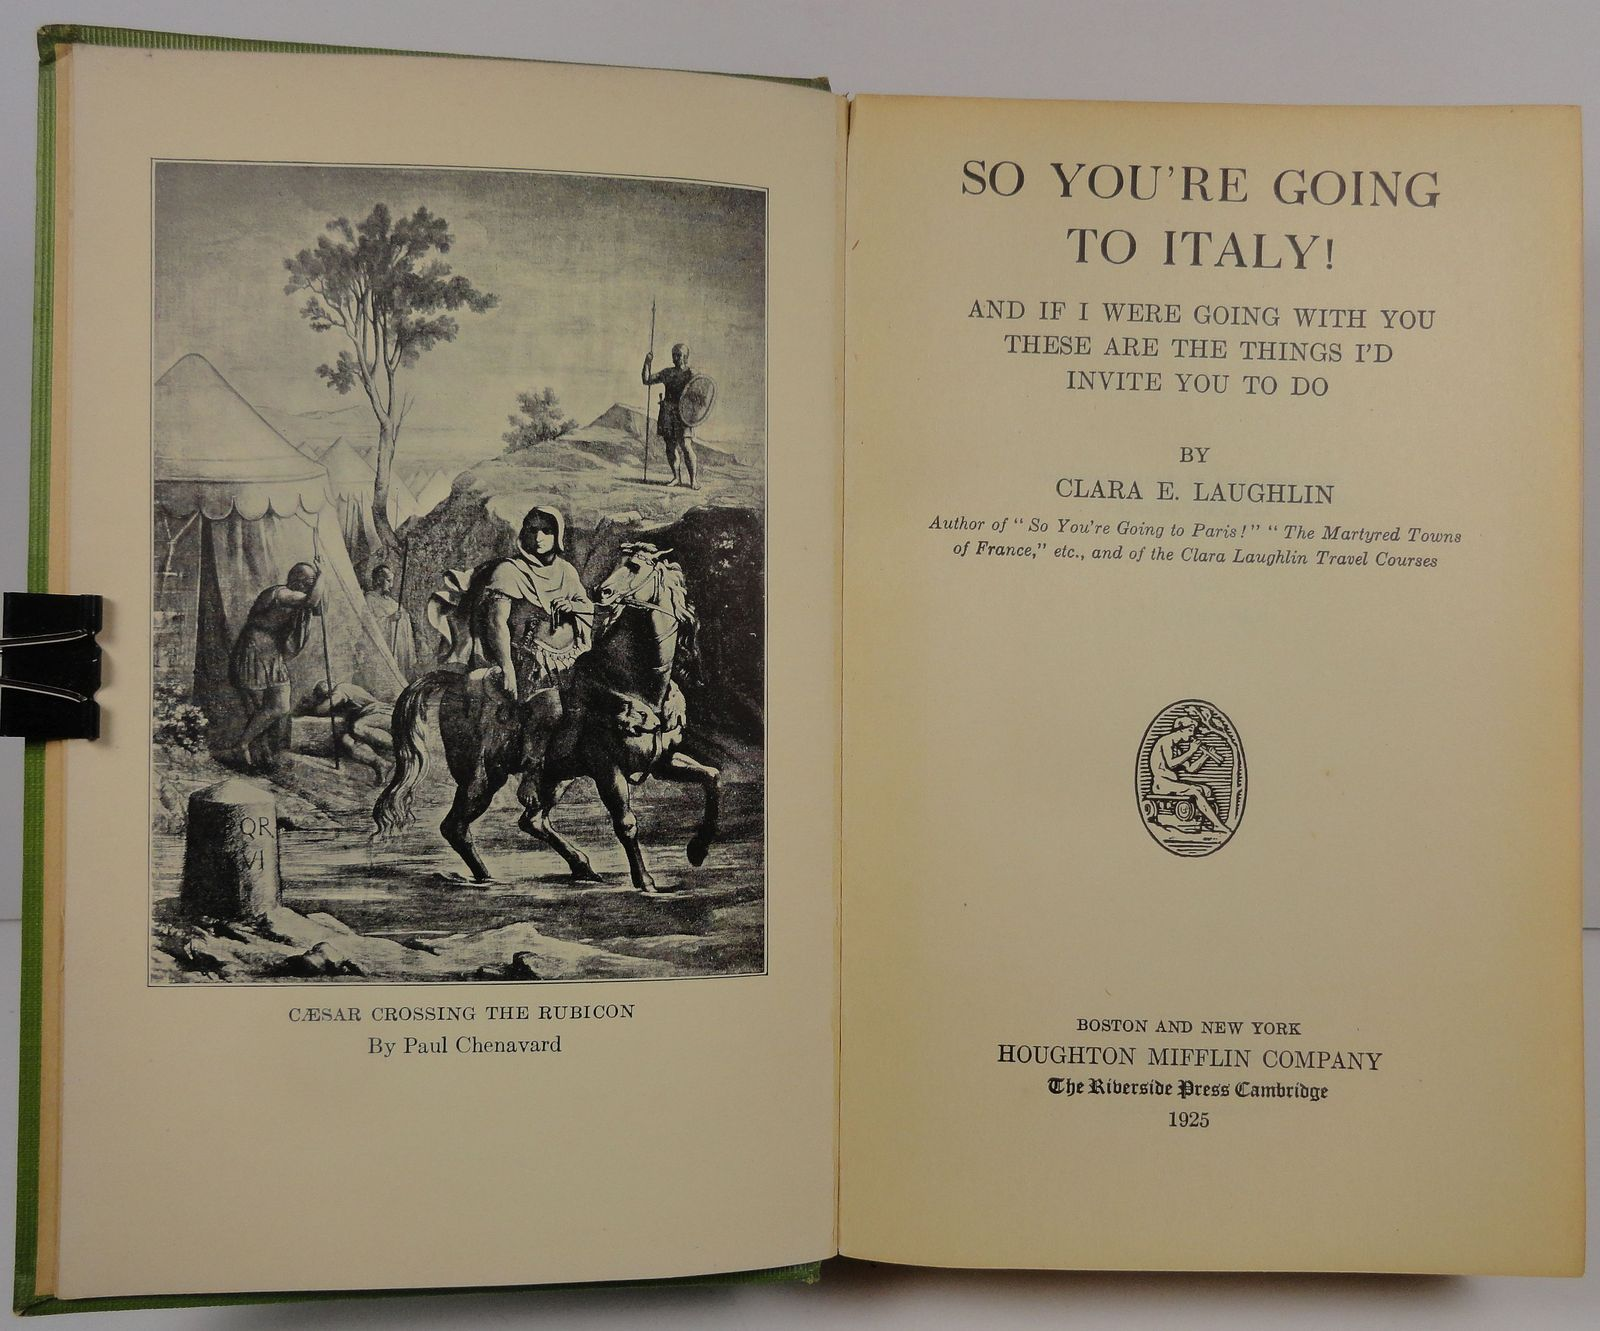 So You're Going to Italy! by Clara E. Laughlin 1925